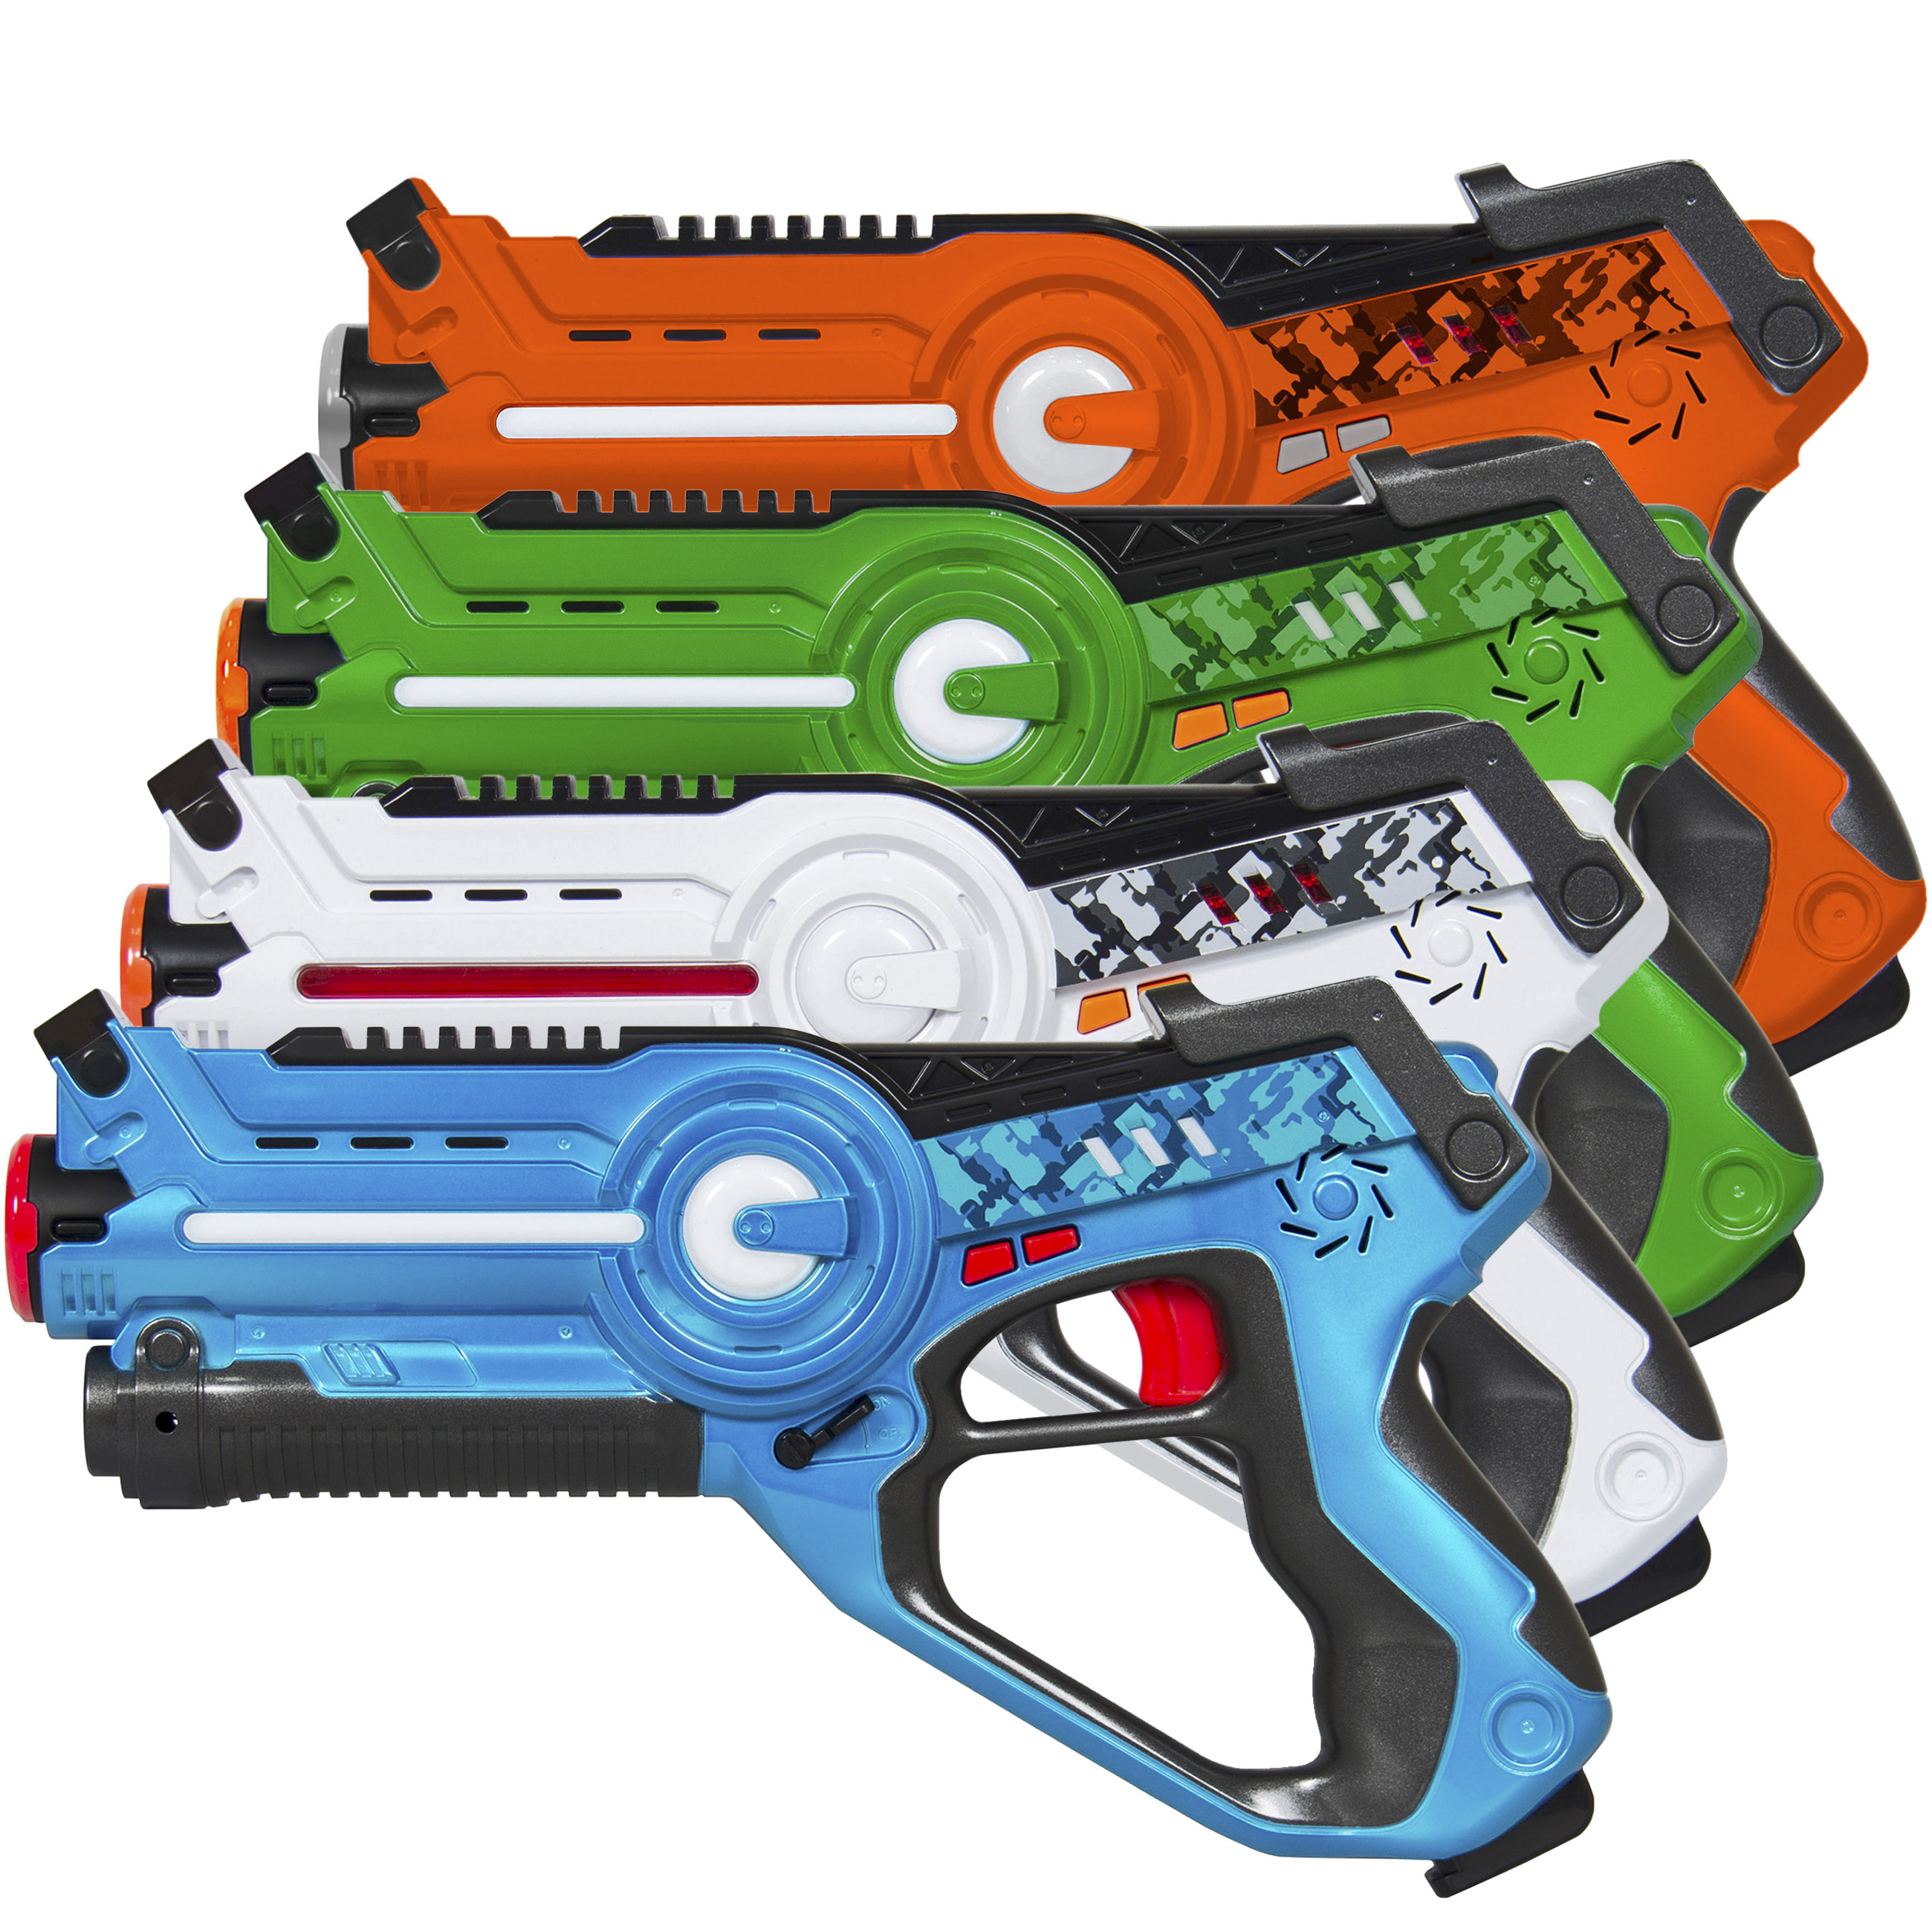 Best Choice Products Kids Laser Tag Set Toy Blasters w/ Multiplayer Mode, 4 Pack